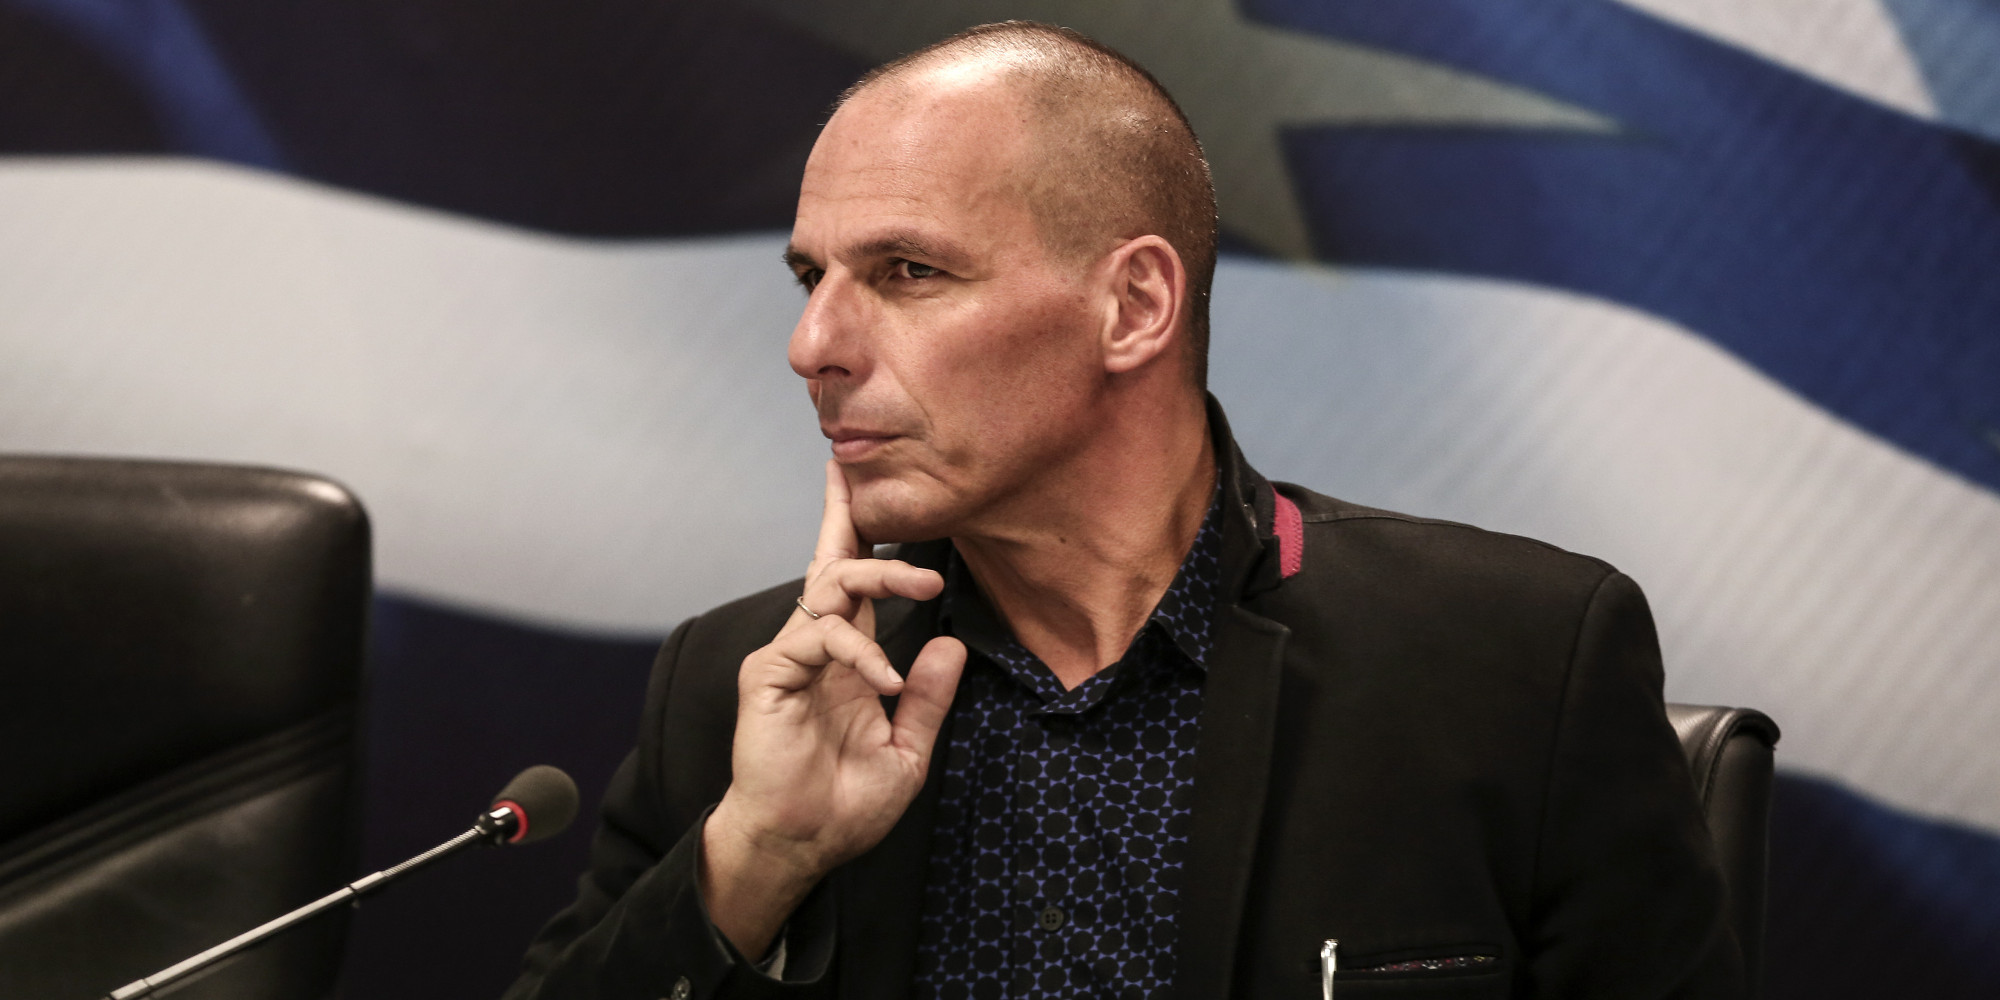 Varoufakis: We will investigate loans given to Media businesses